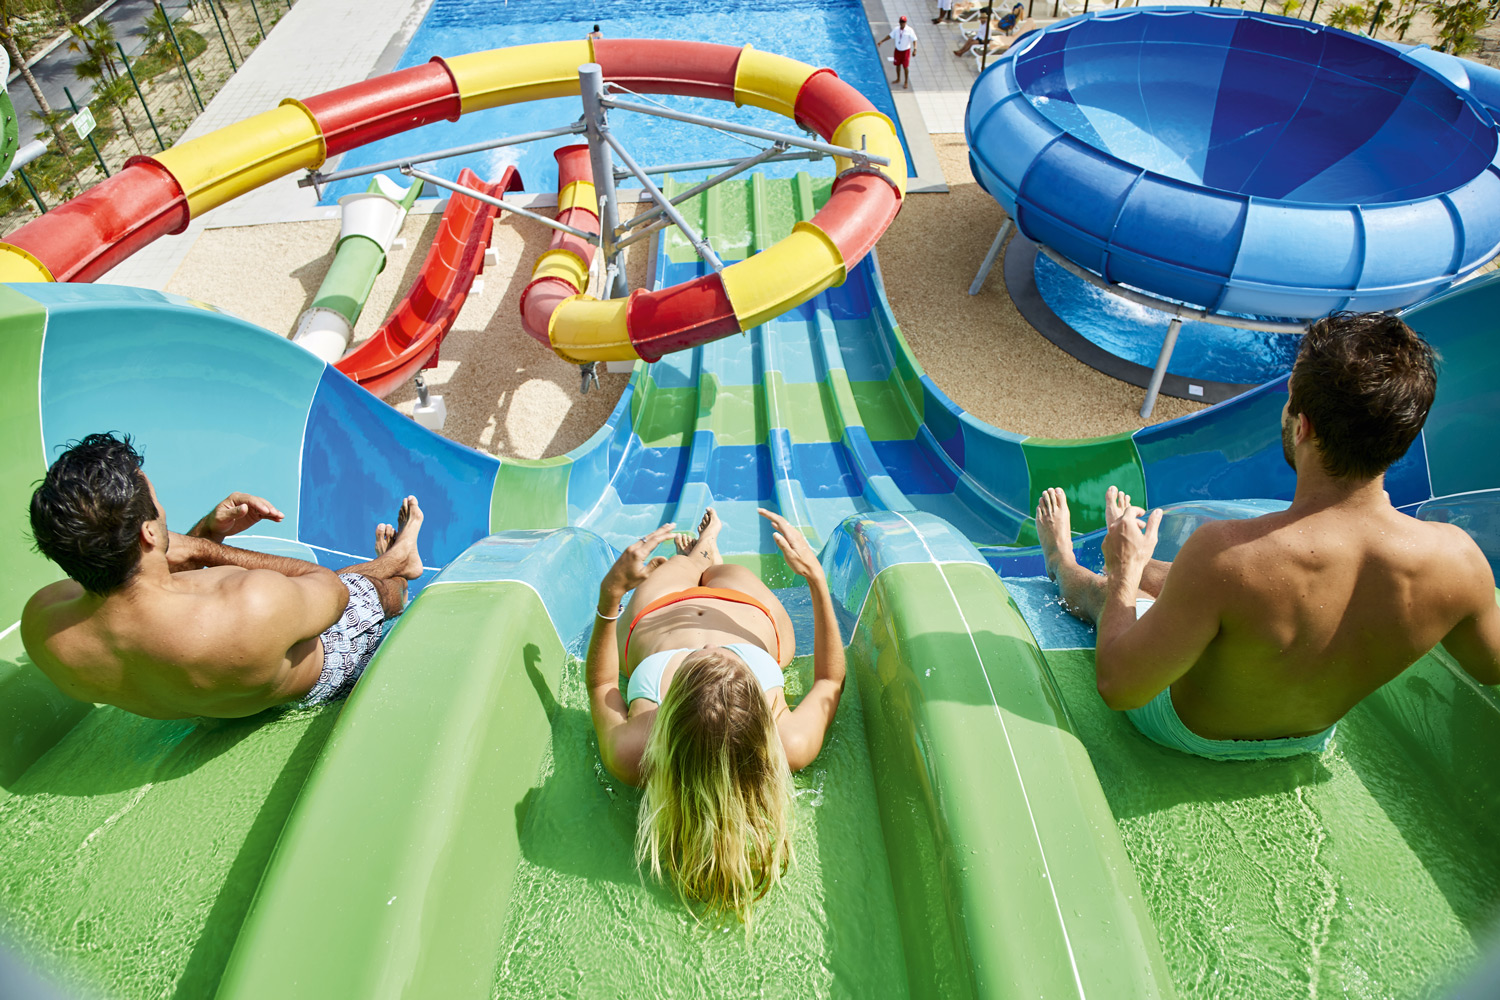 Splash Water World offers 4-lane body slides, a free-fall slide, and an exhilarating tube slide.